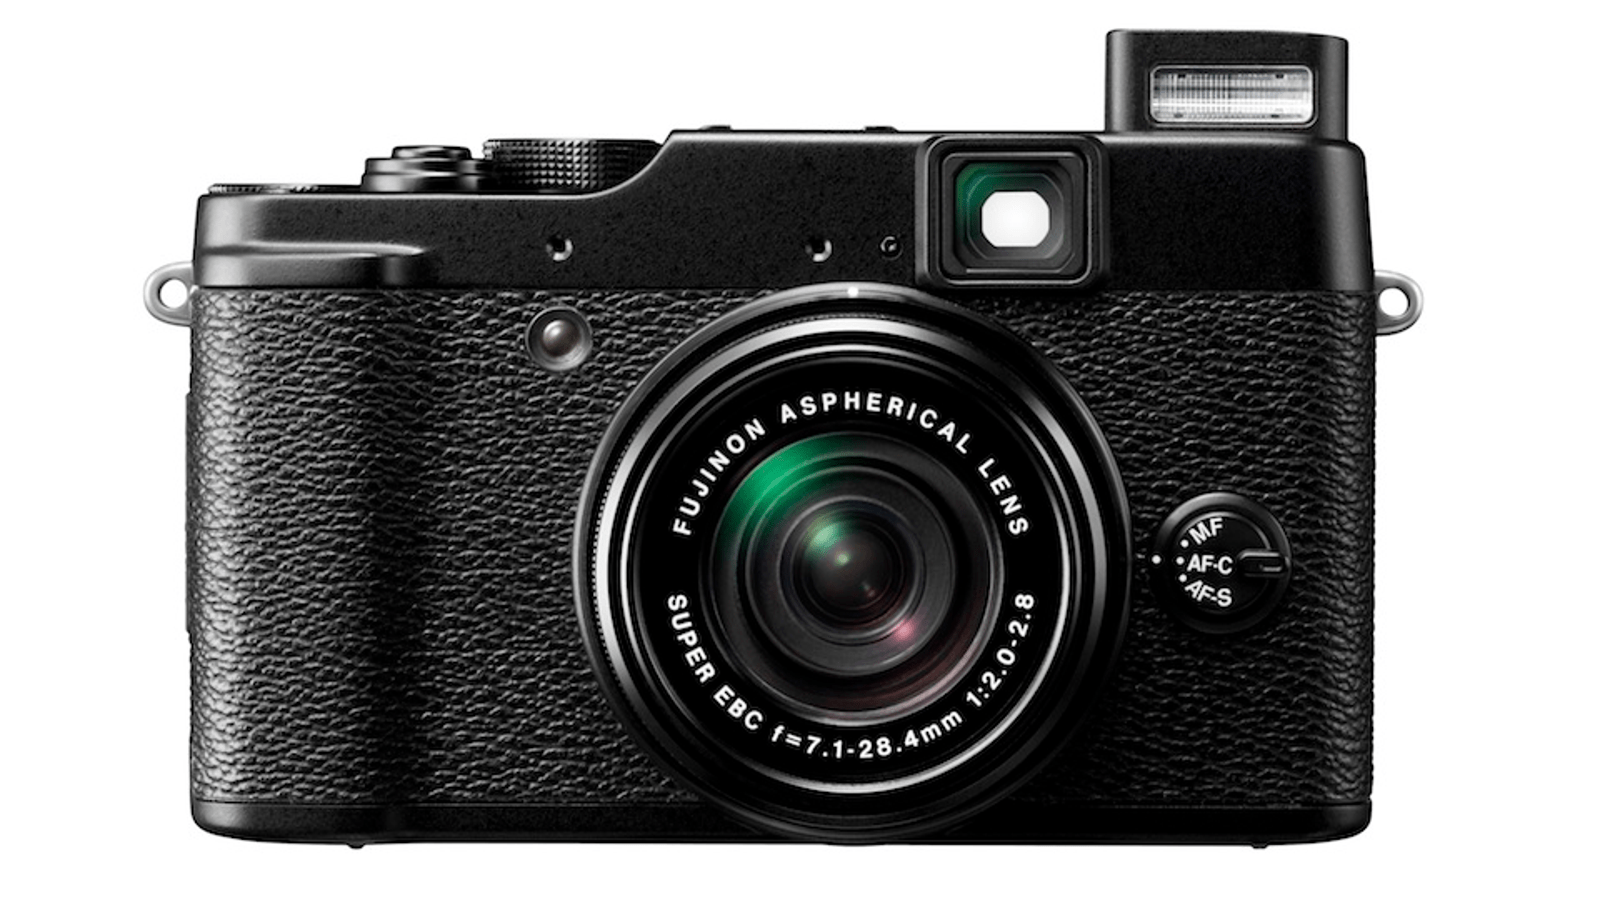 Fuji X10 The Pro Point And Shoot Fighter